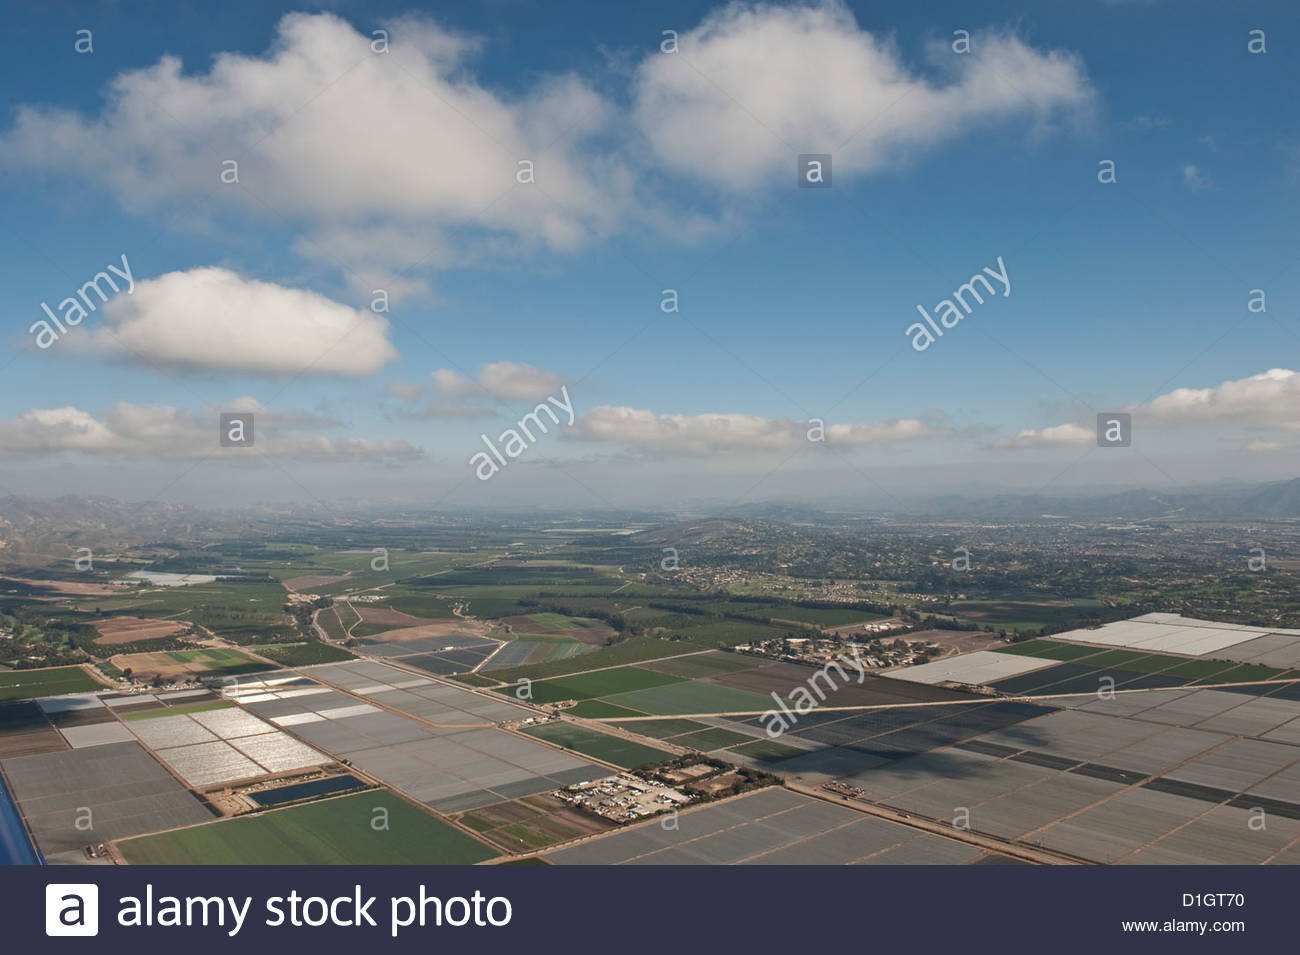 Aerial photo of clouds and farm fields, Ventura, California, United States of America, North America - Stock Image